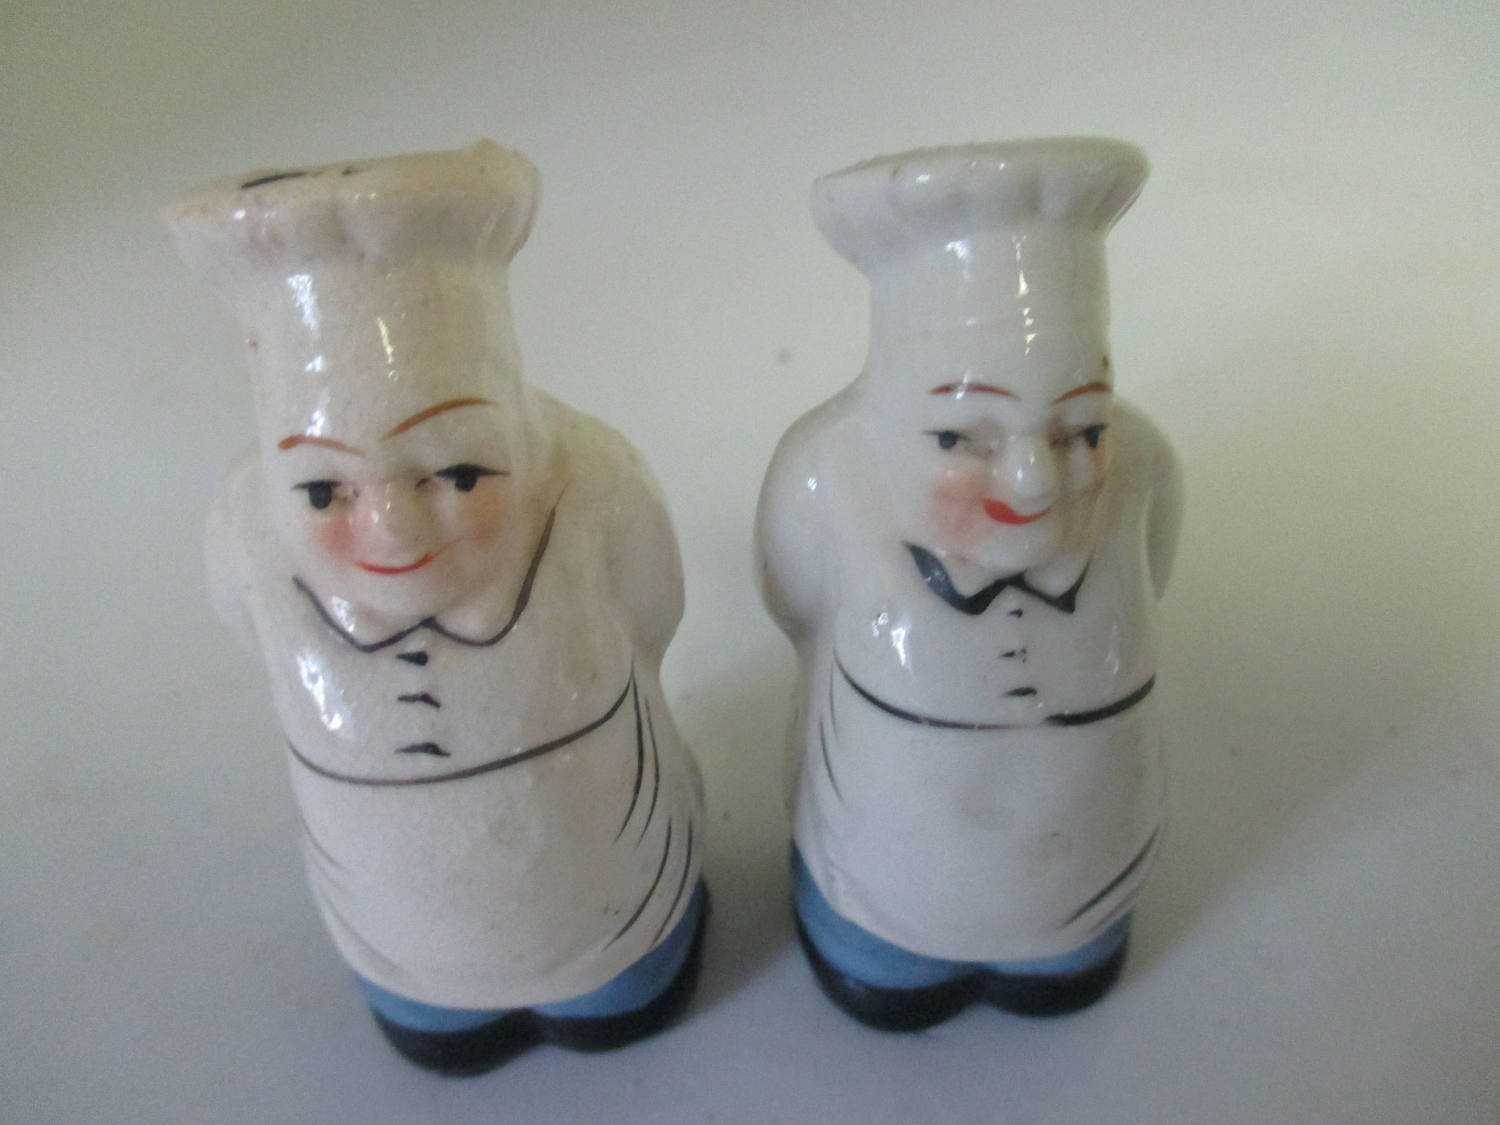 Mid Century Porcelain Chefs Salt Pepper Shakers Cottage Collectible Display Farmhouse Country Kitchen Dining French Decor Carol S True Vintage And Antiques